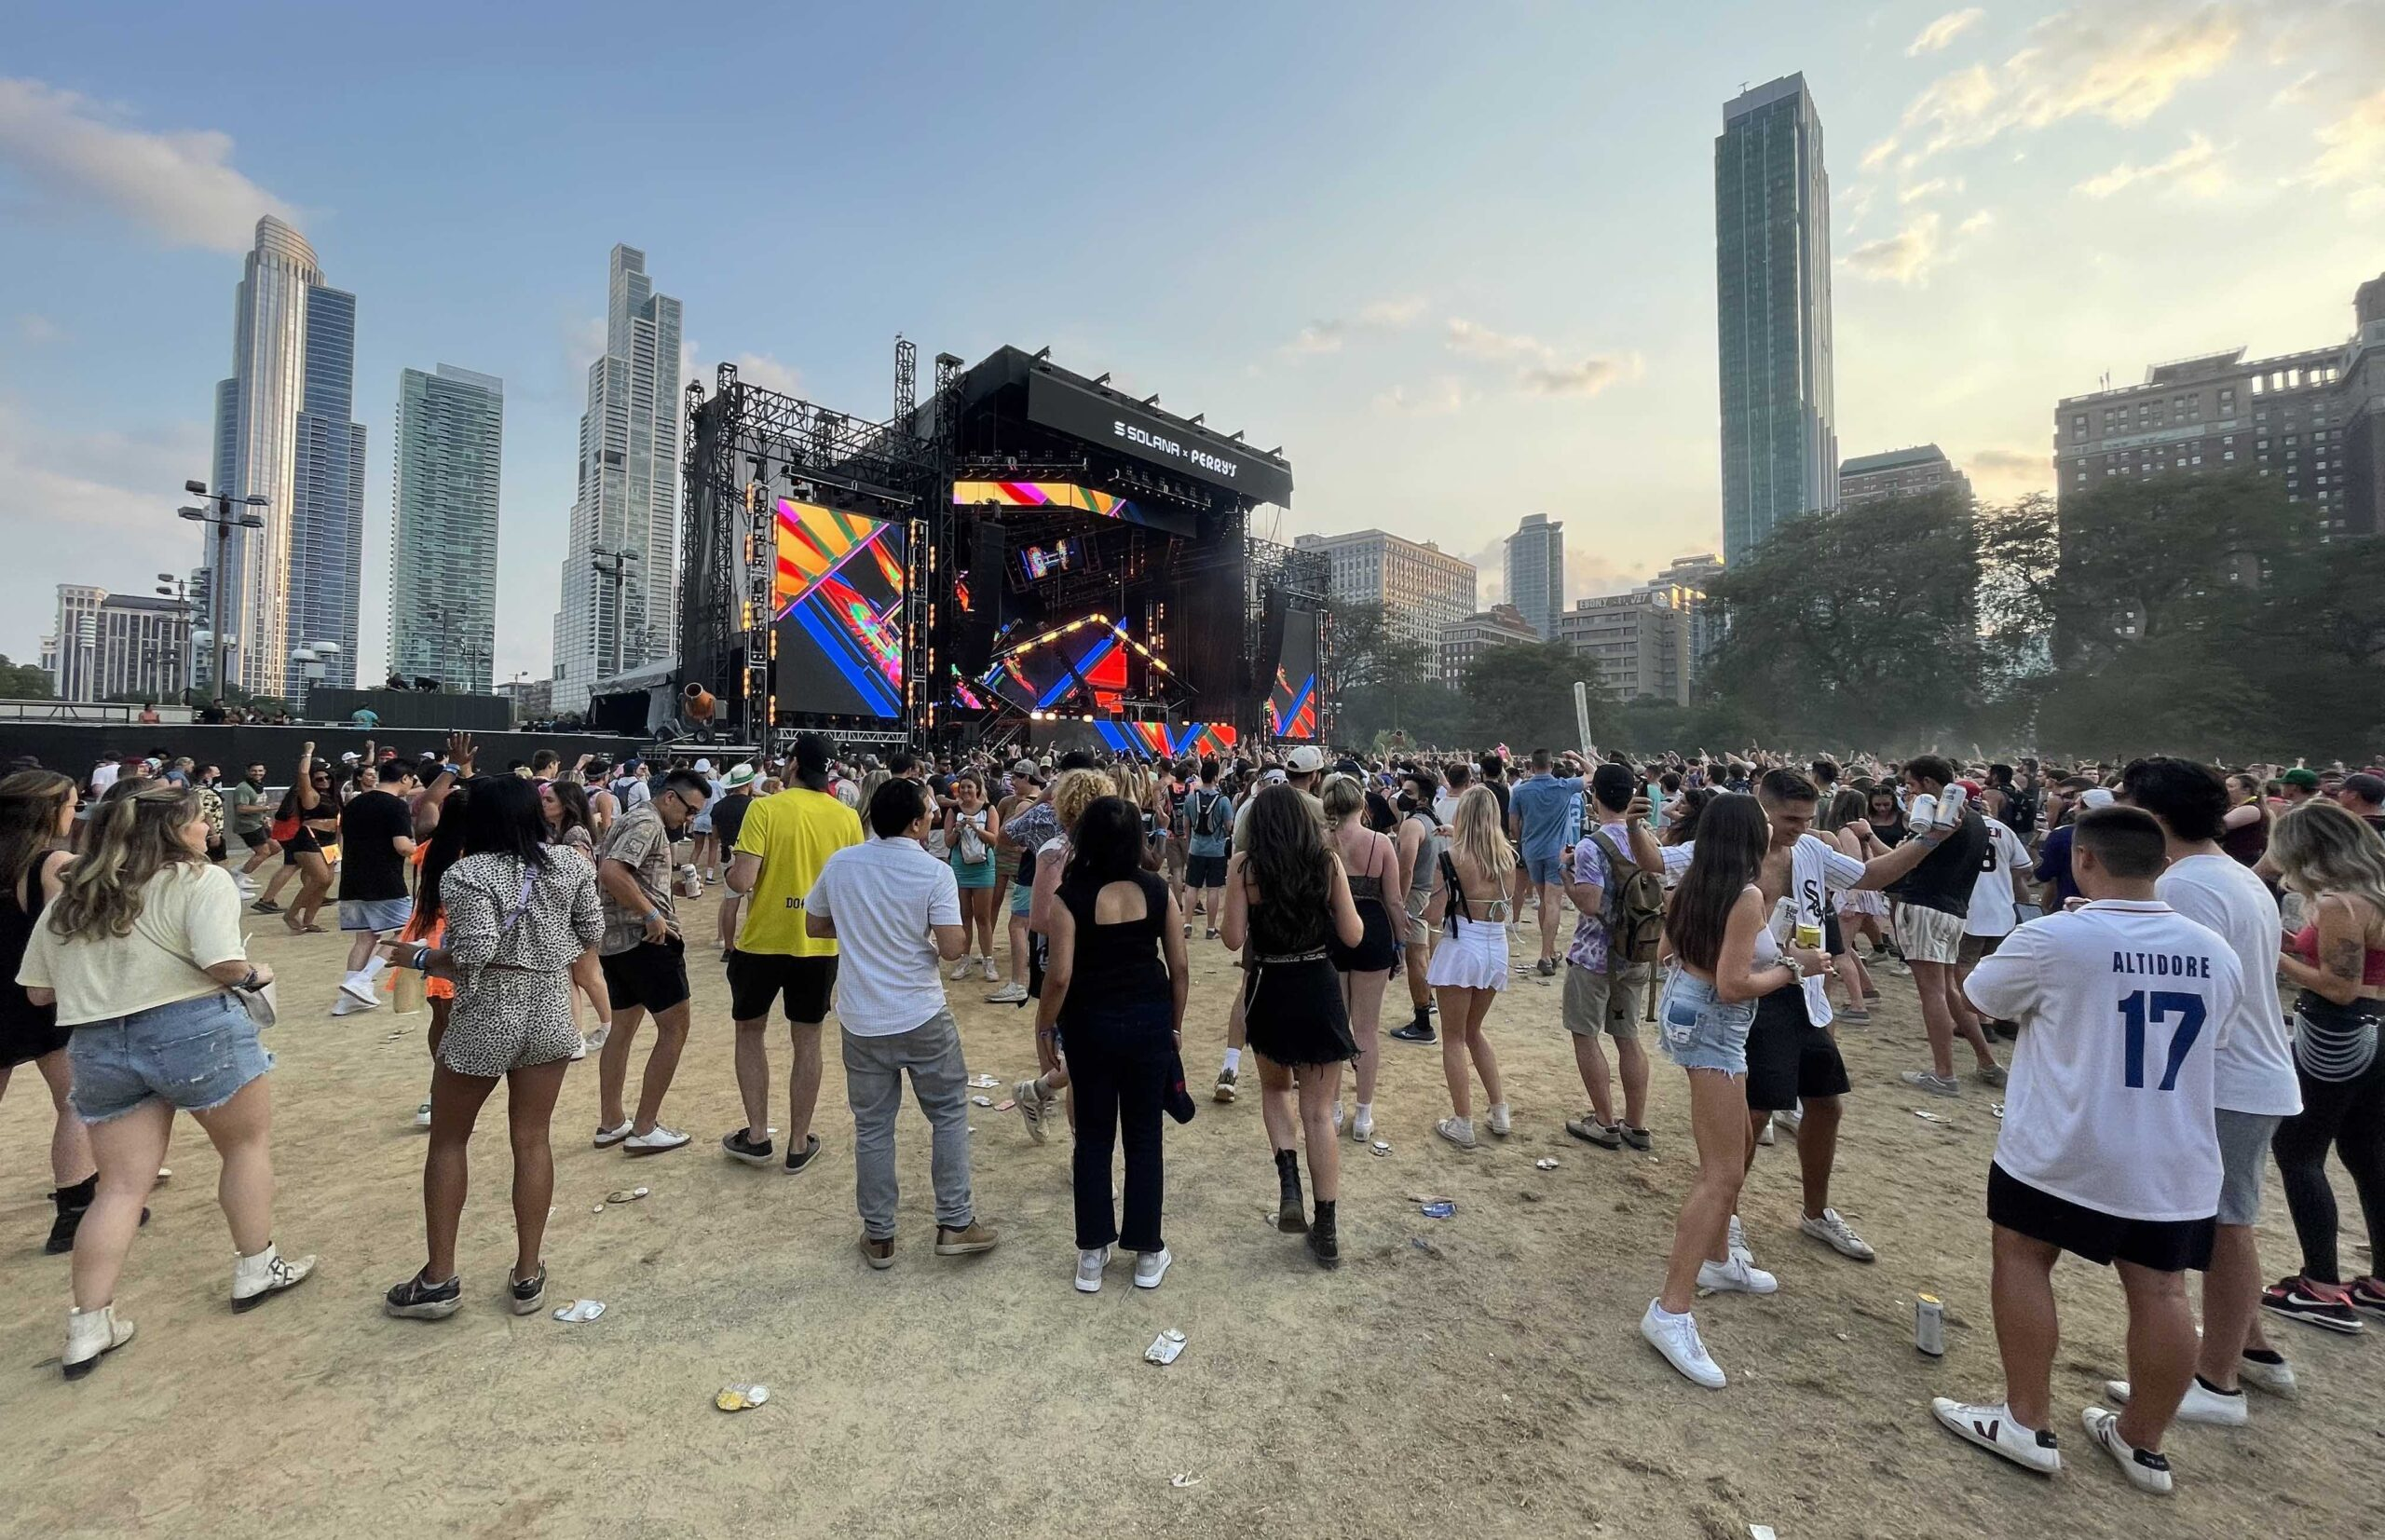 The Bad Boys of Lollapalooza 2021: DaBaby, Limp Bizkit & Post Malone, Are These Artists Worth The Hype?